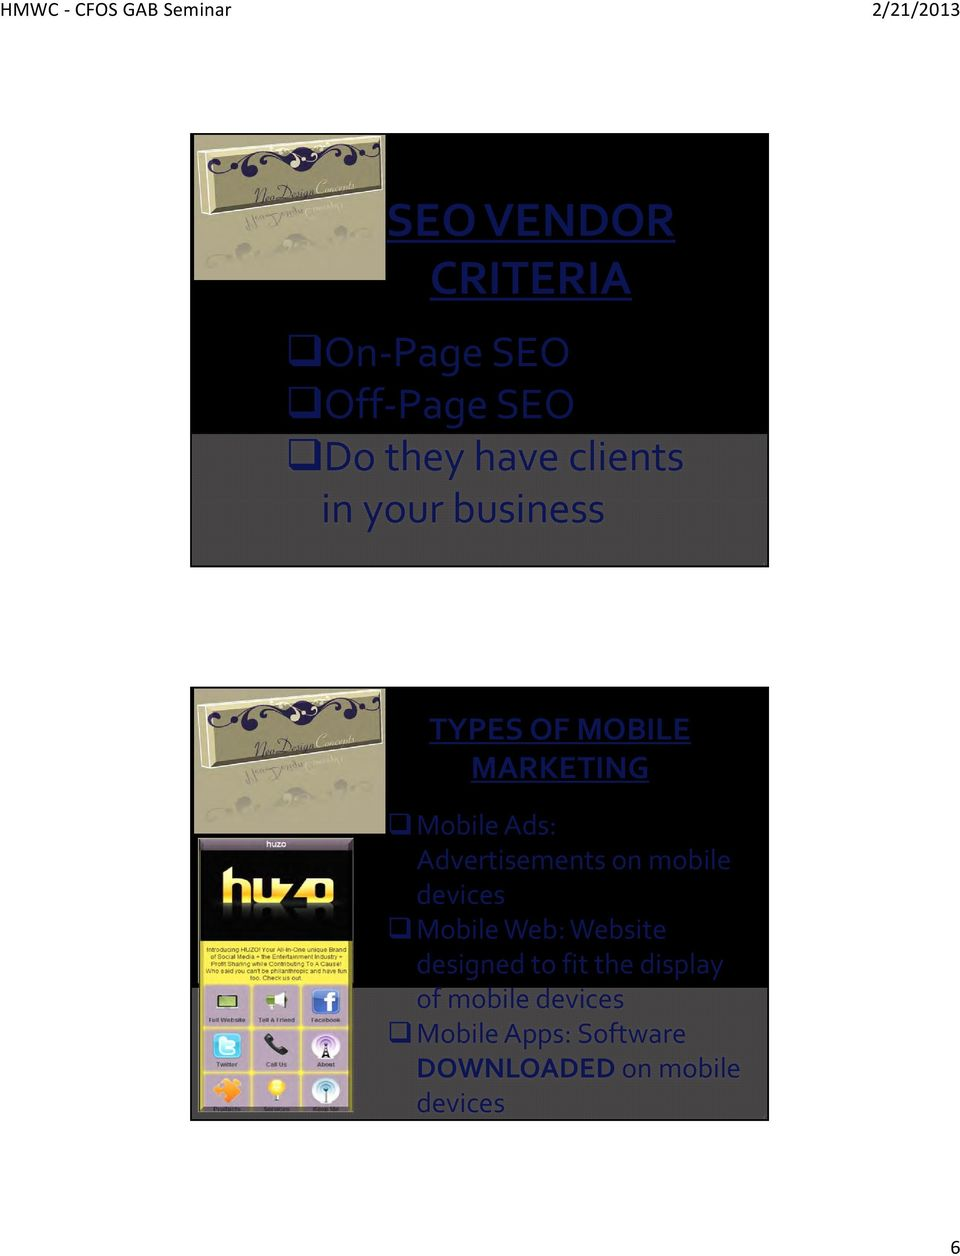 Advertisements on mobile devices Mobile Web: Website designed to